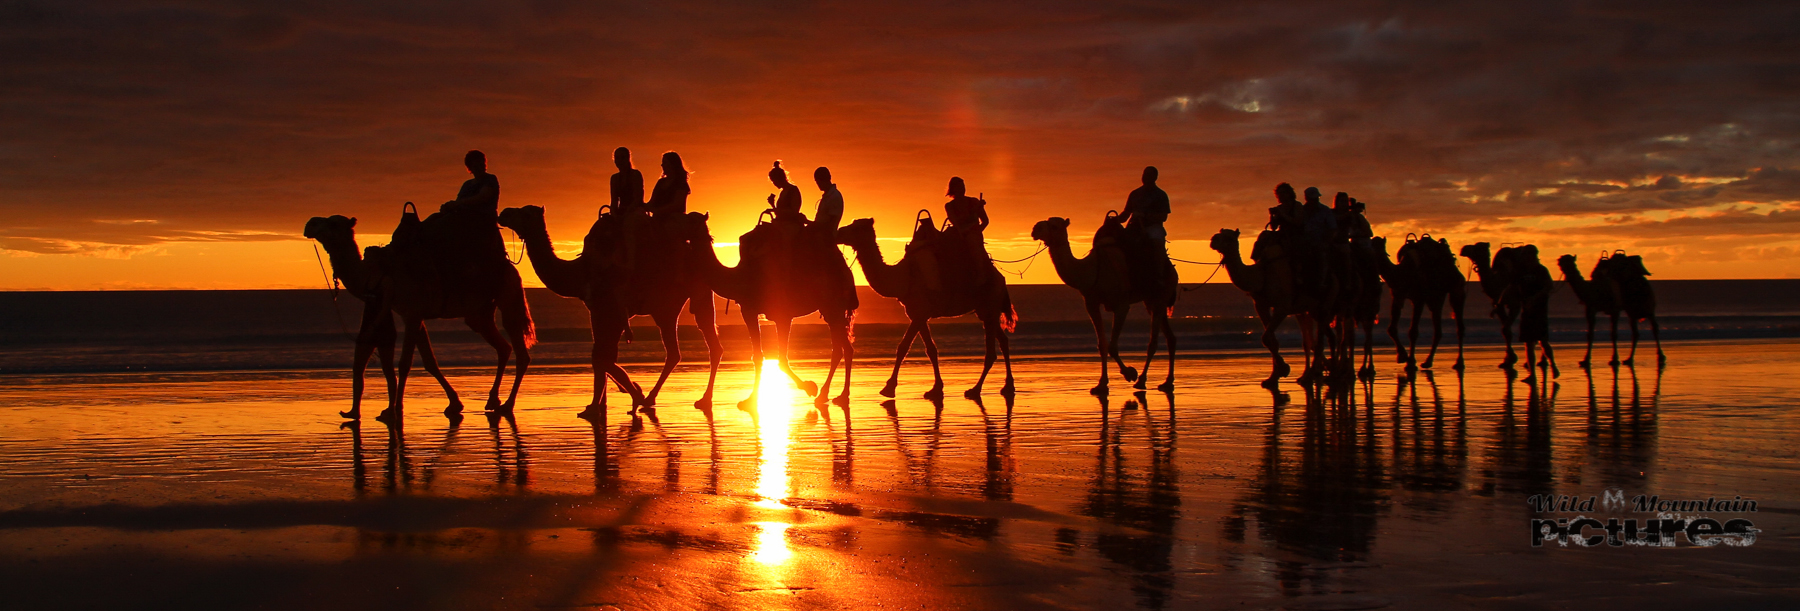 Camel-Karavane am Cable Beach in Broome_20